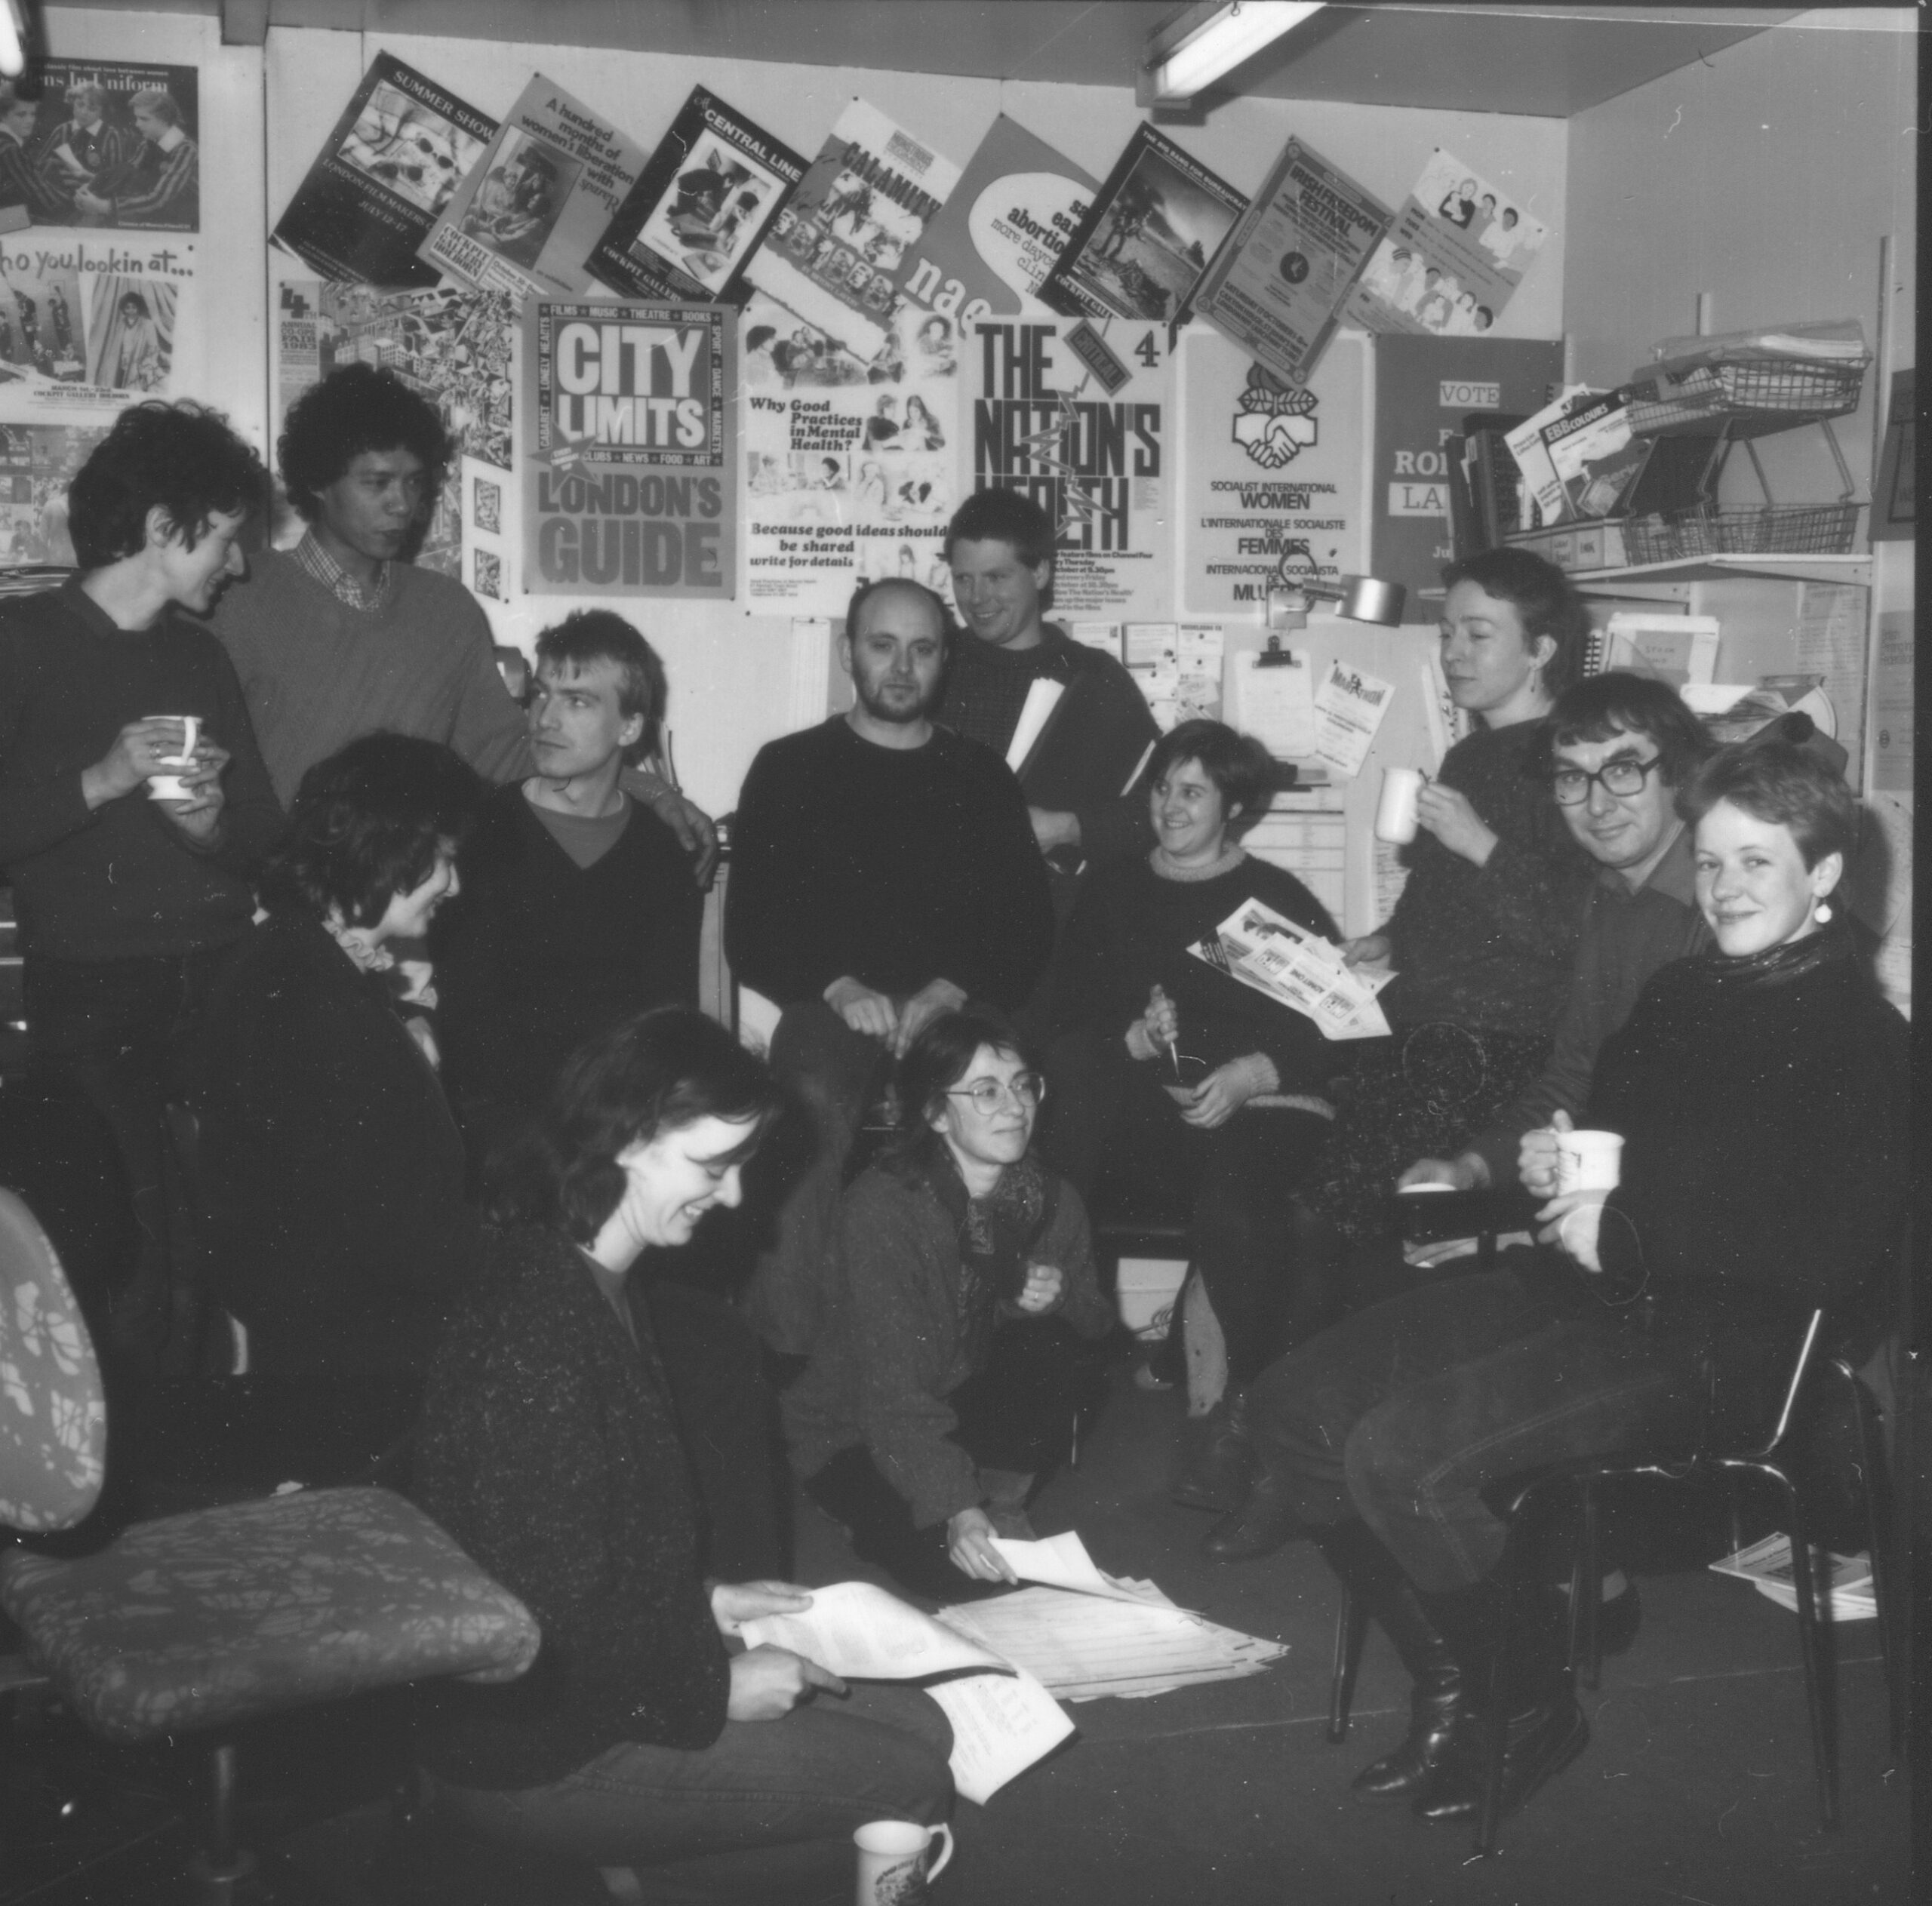 Group of people in room with posters on wall